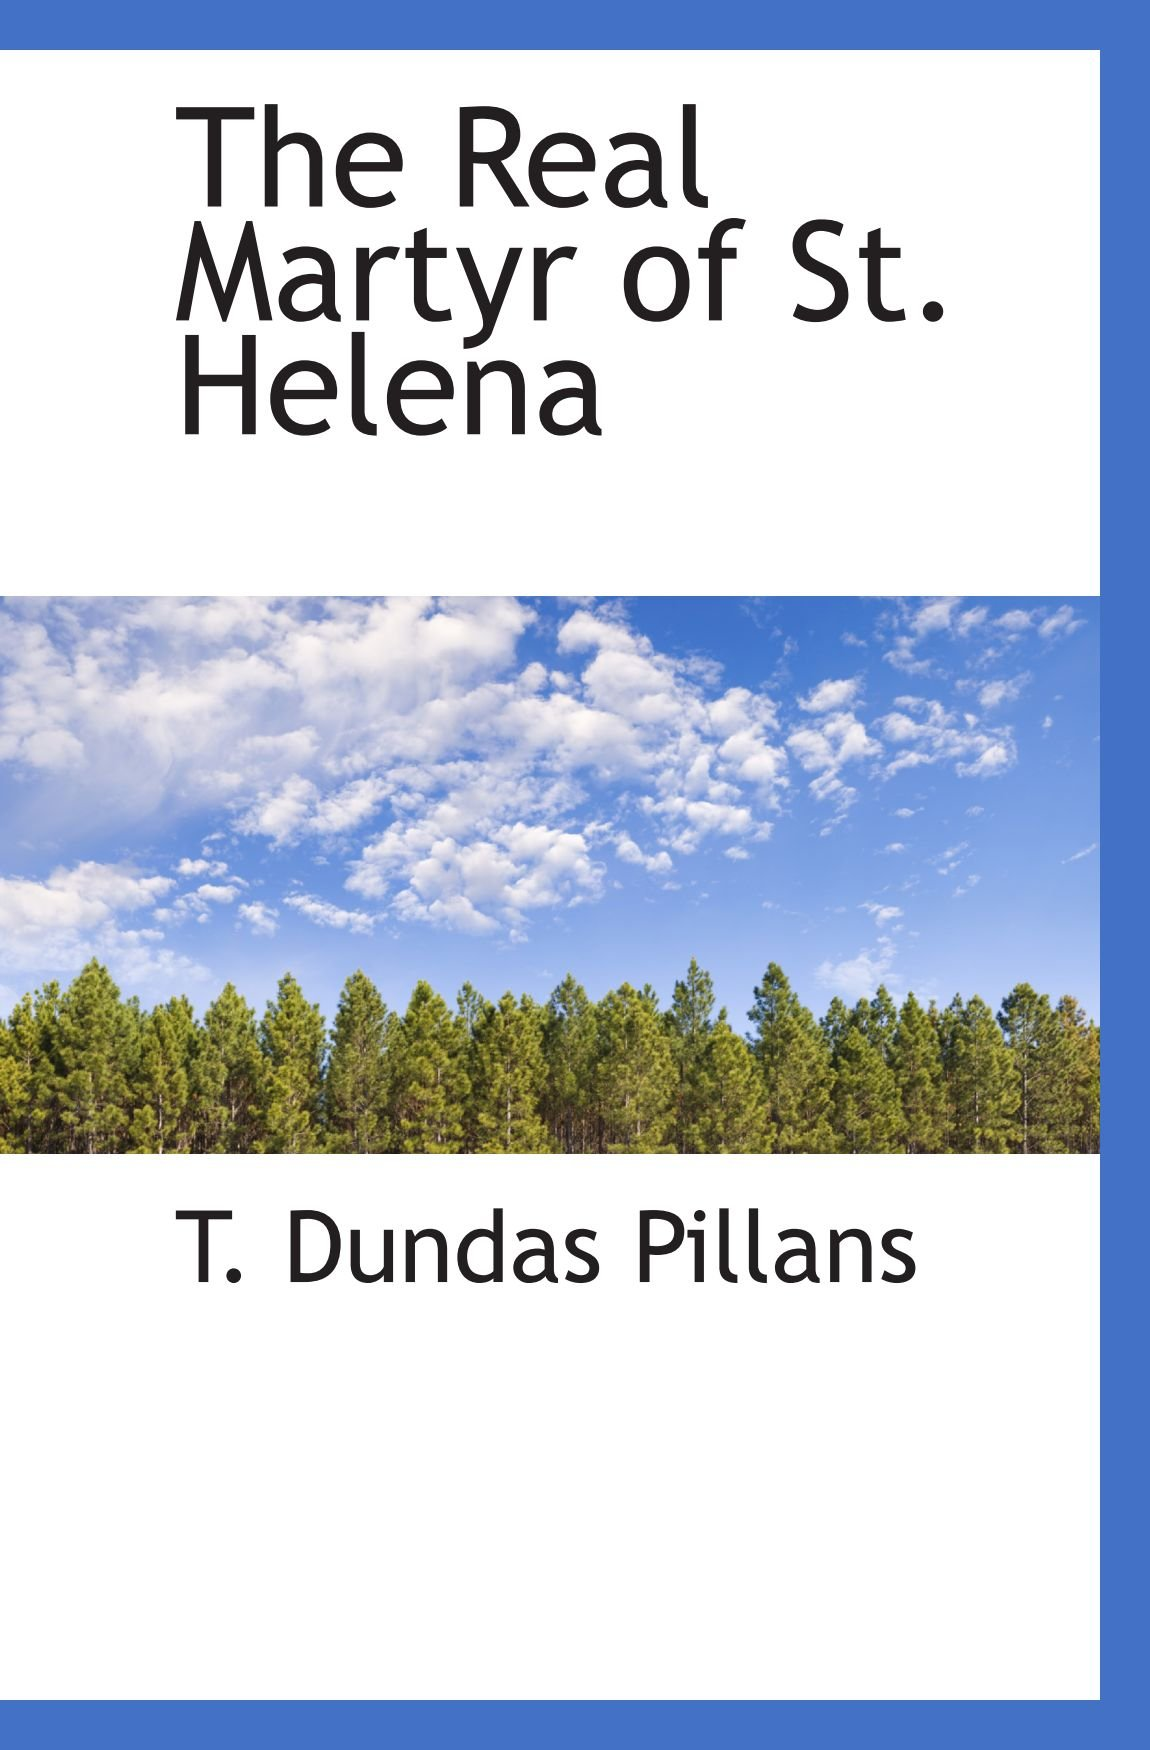 The Real Martyr of St. Helena pdf